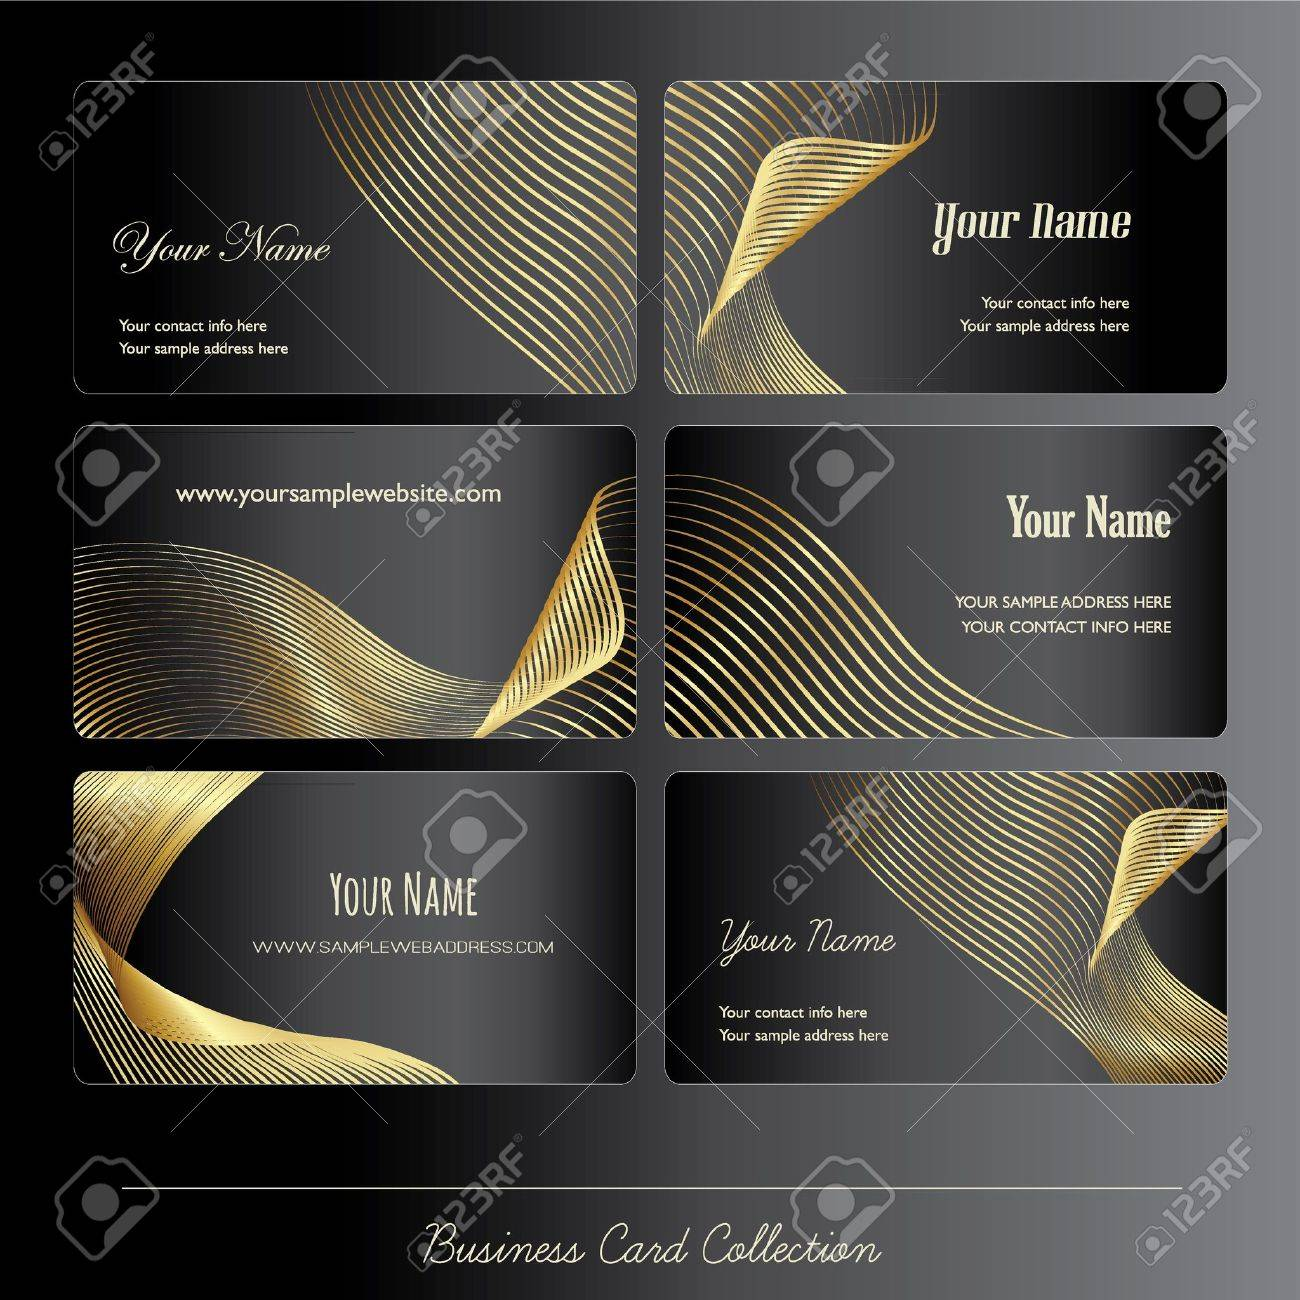 Business card printing tampa choice image free business cards esl business cards choice image free business cards business card printing san jose images free business magicingreecefo Gallery